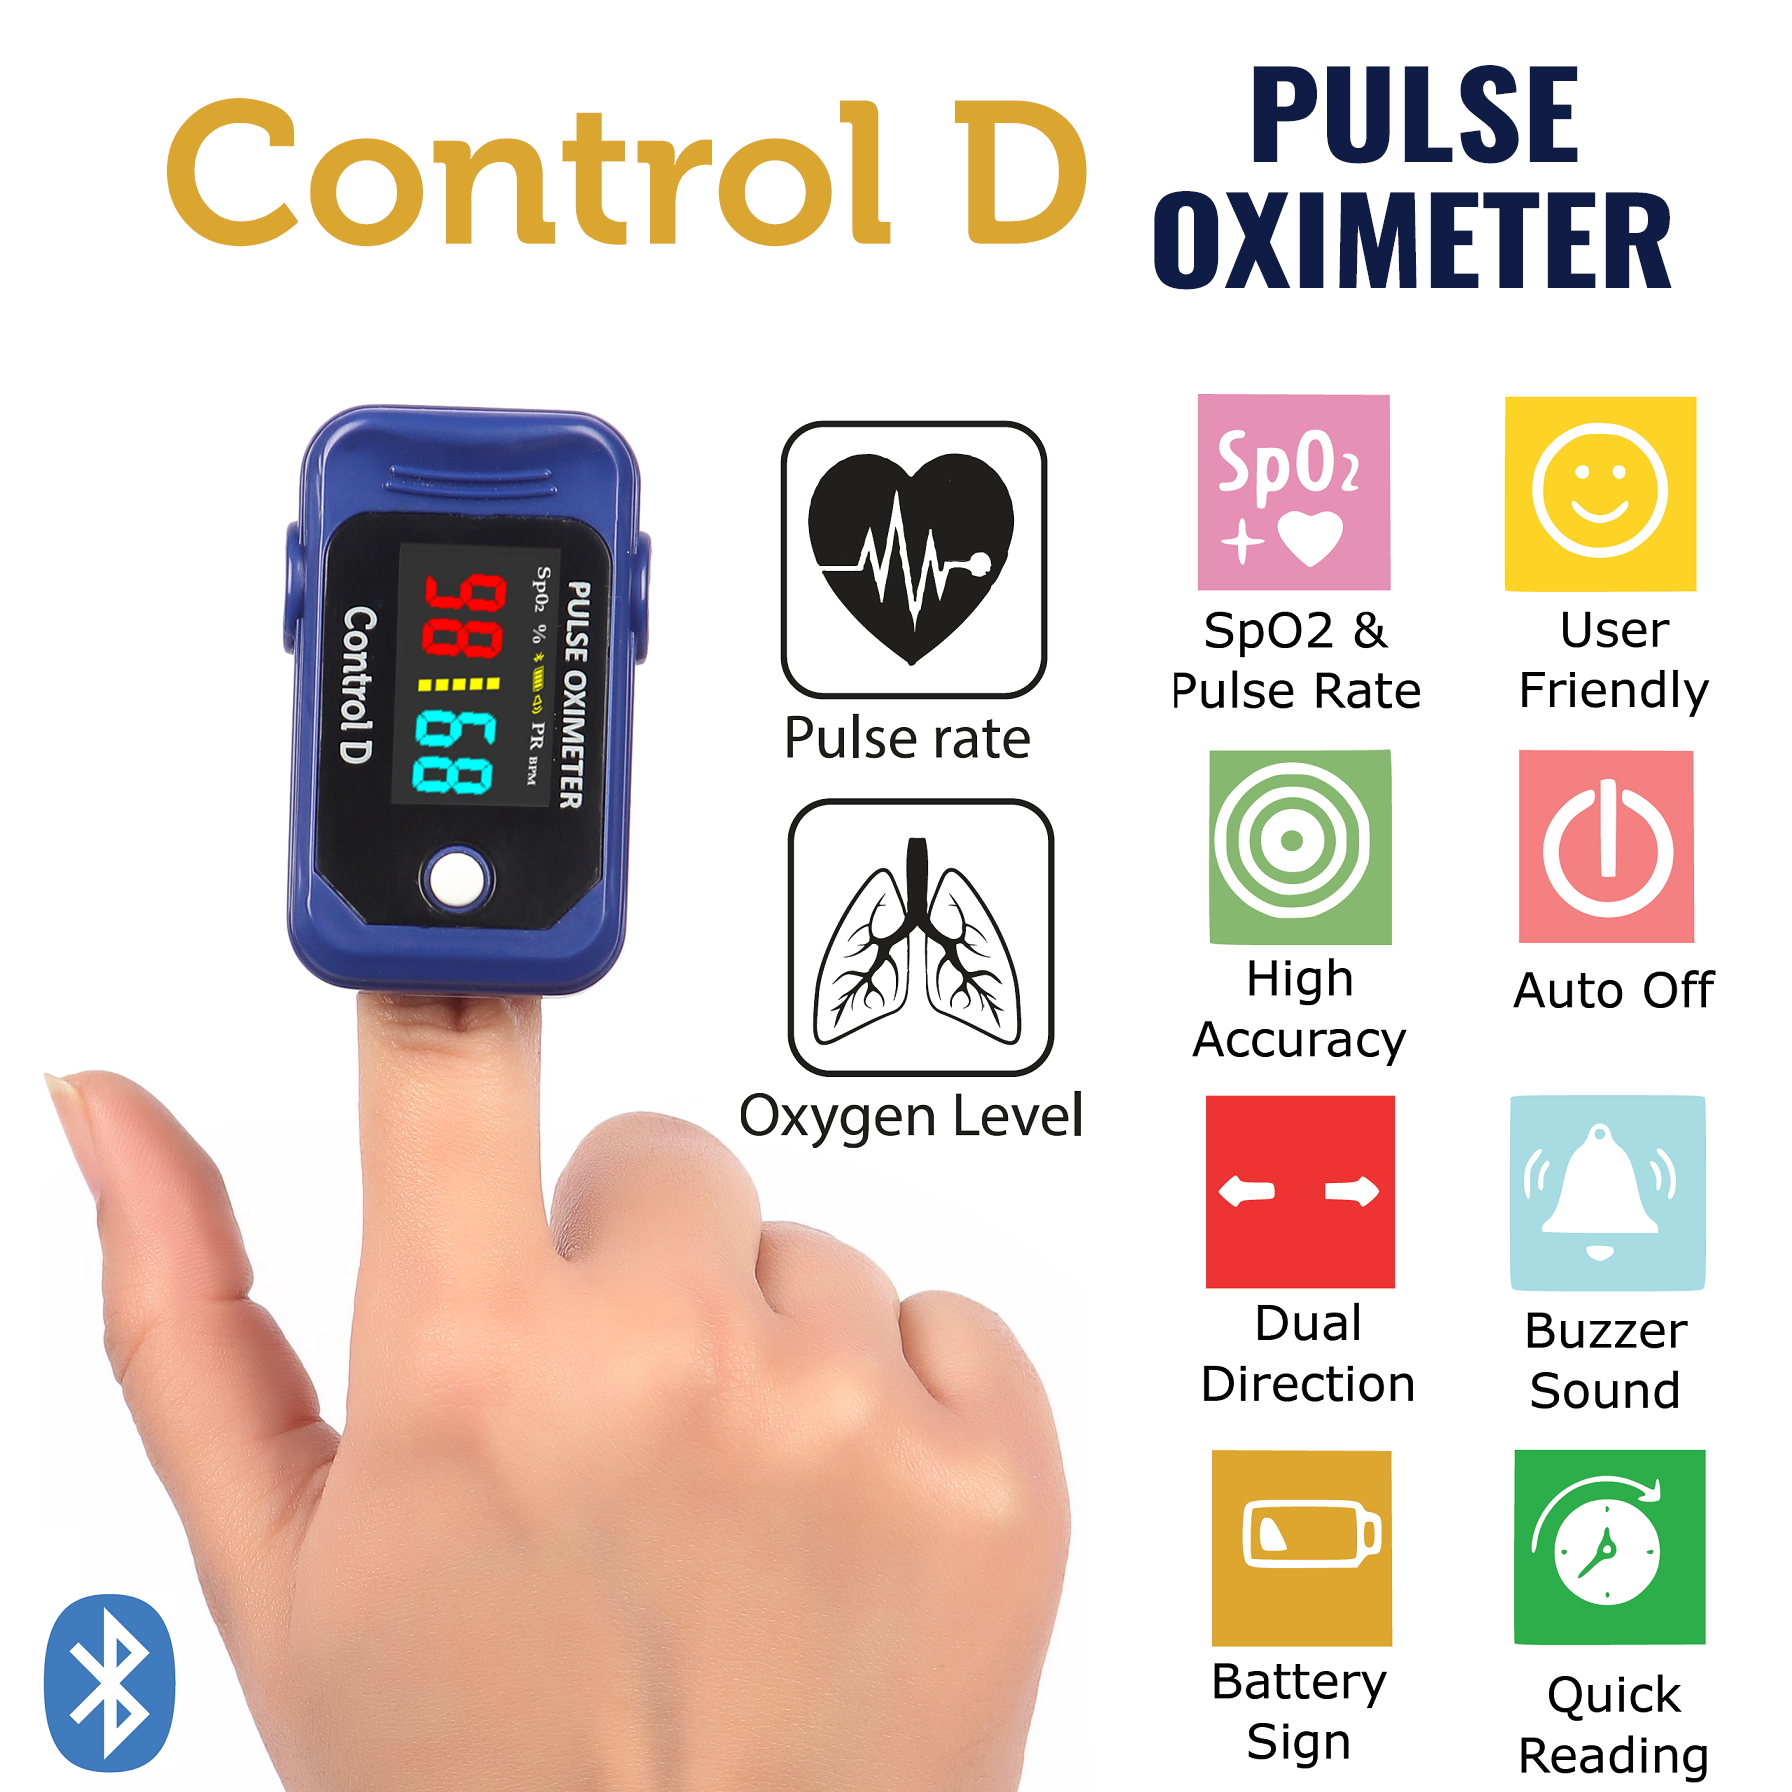 Control D Protection Kit - Bluetooth Pulse Oximeter, Thermometer, Sanitizer Wipes & Mask (Made in India)